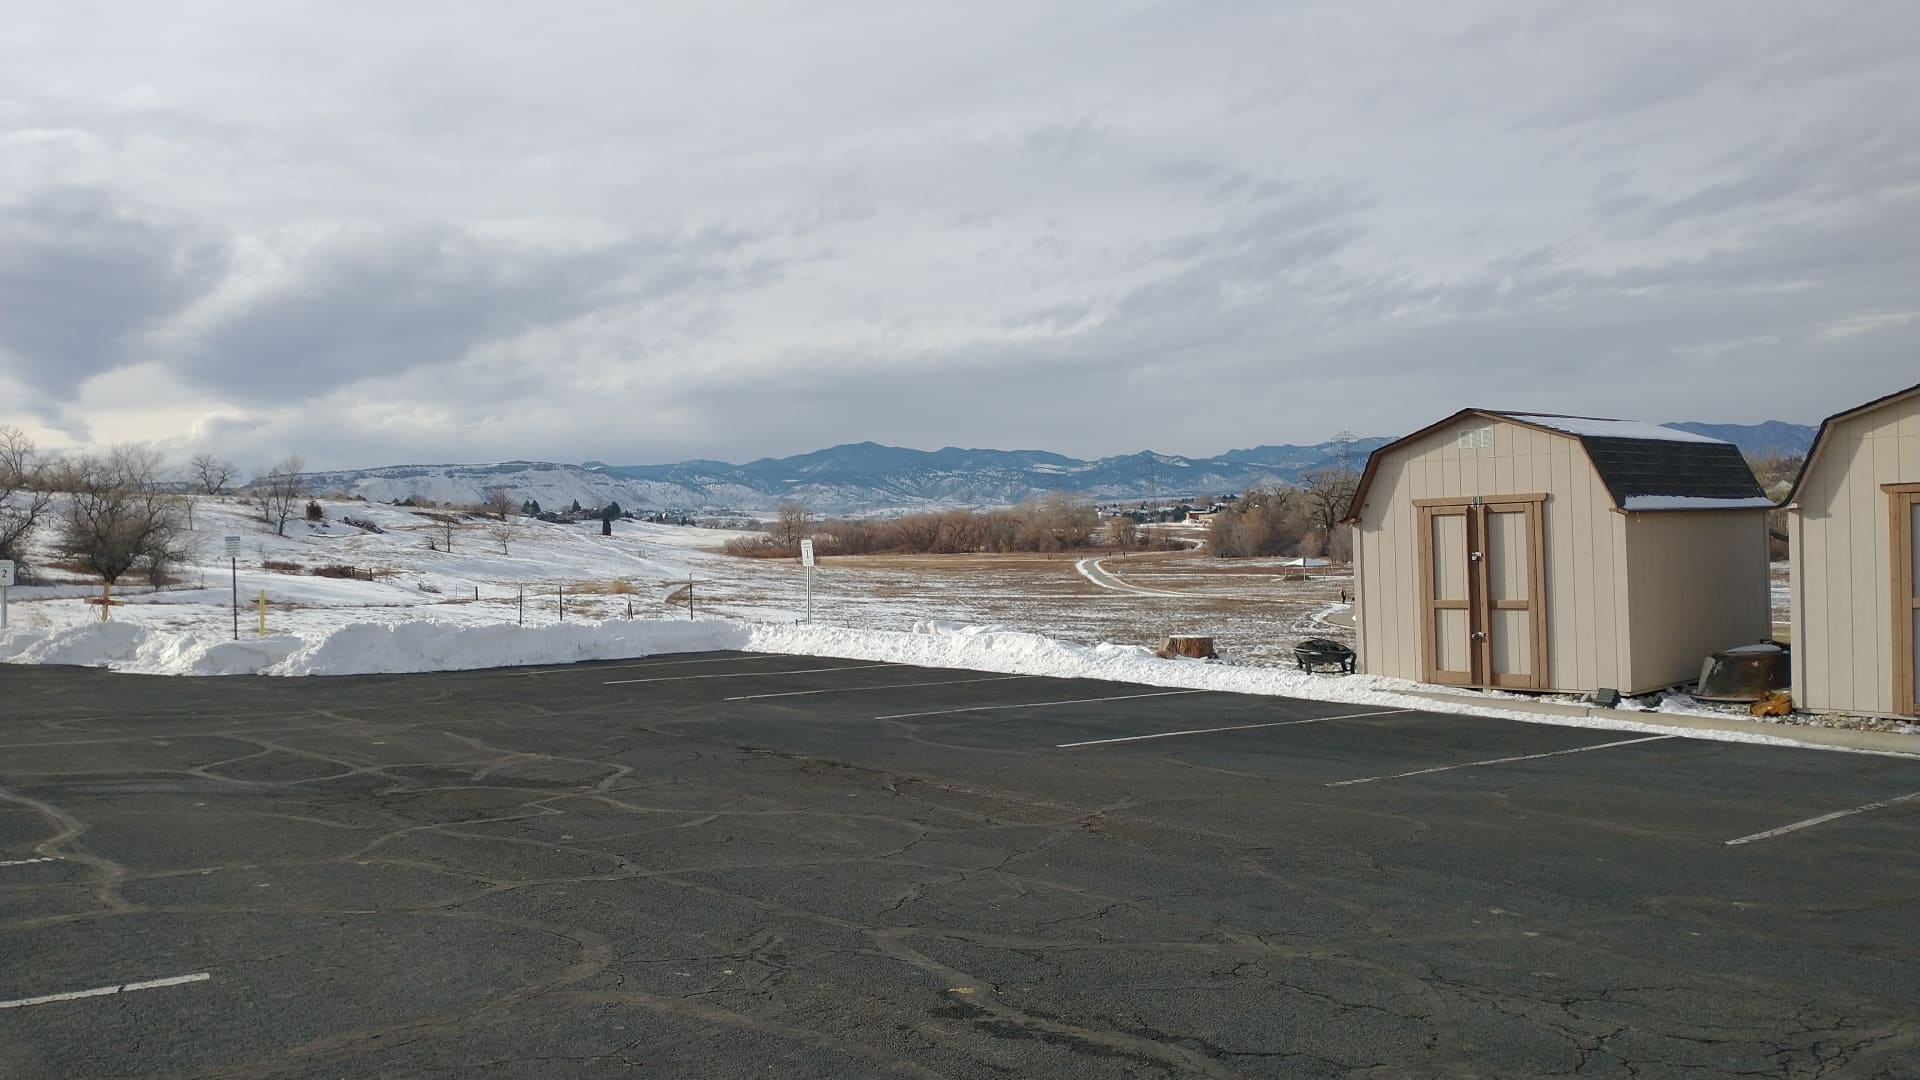 TheColorado Safe Parking Initiative, a volunteer-led nonprofit, makes safe, legal parking spots available to homeless individuals sheltering in their cars. Above, a view from the parking lot where Randy Chase has been staying.